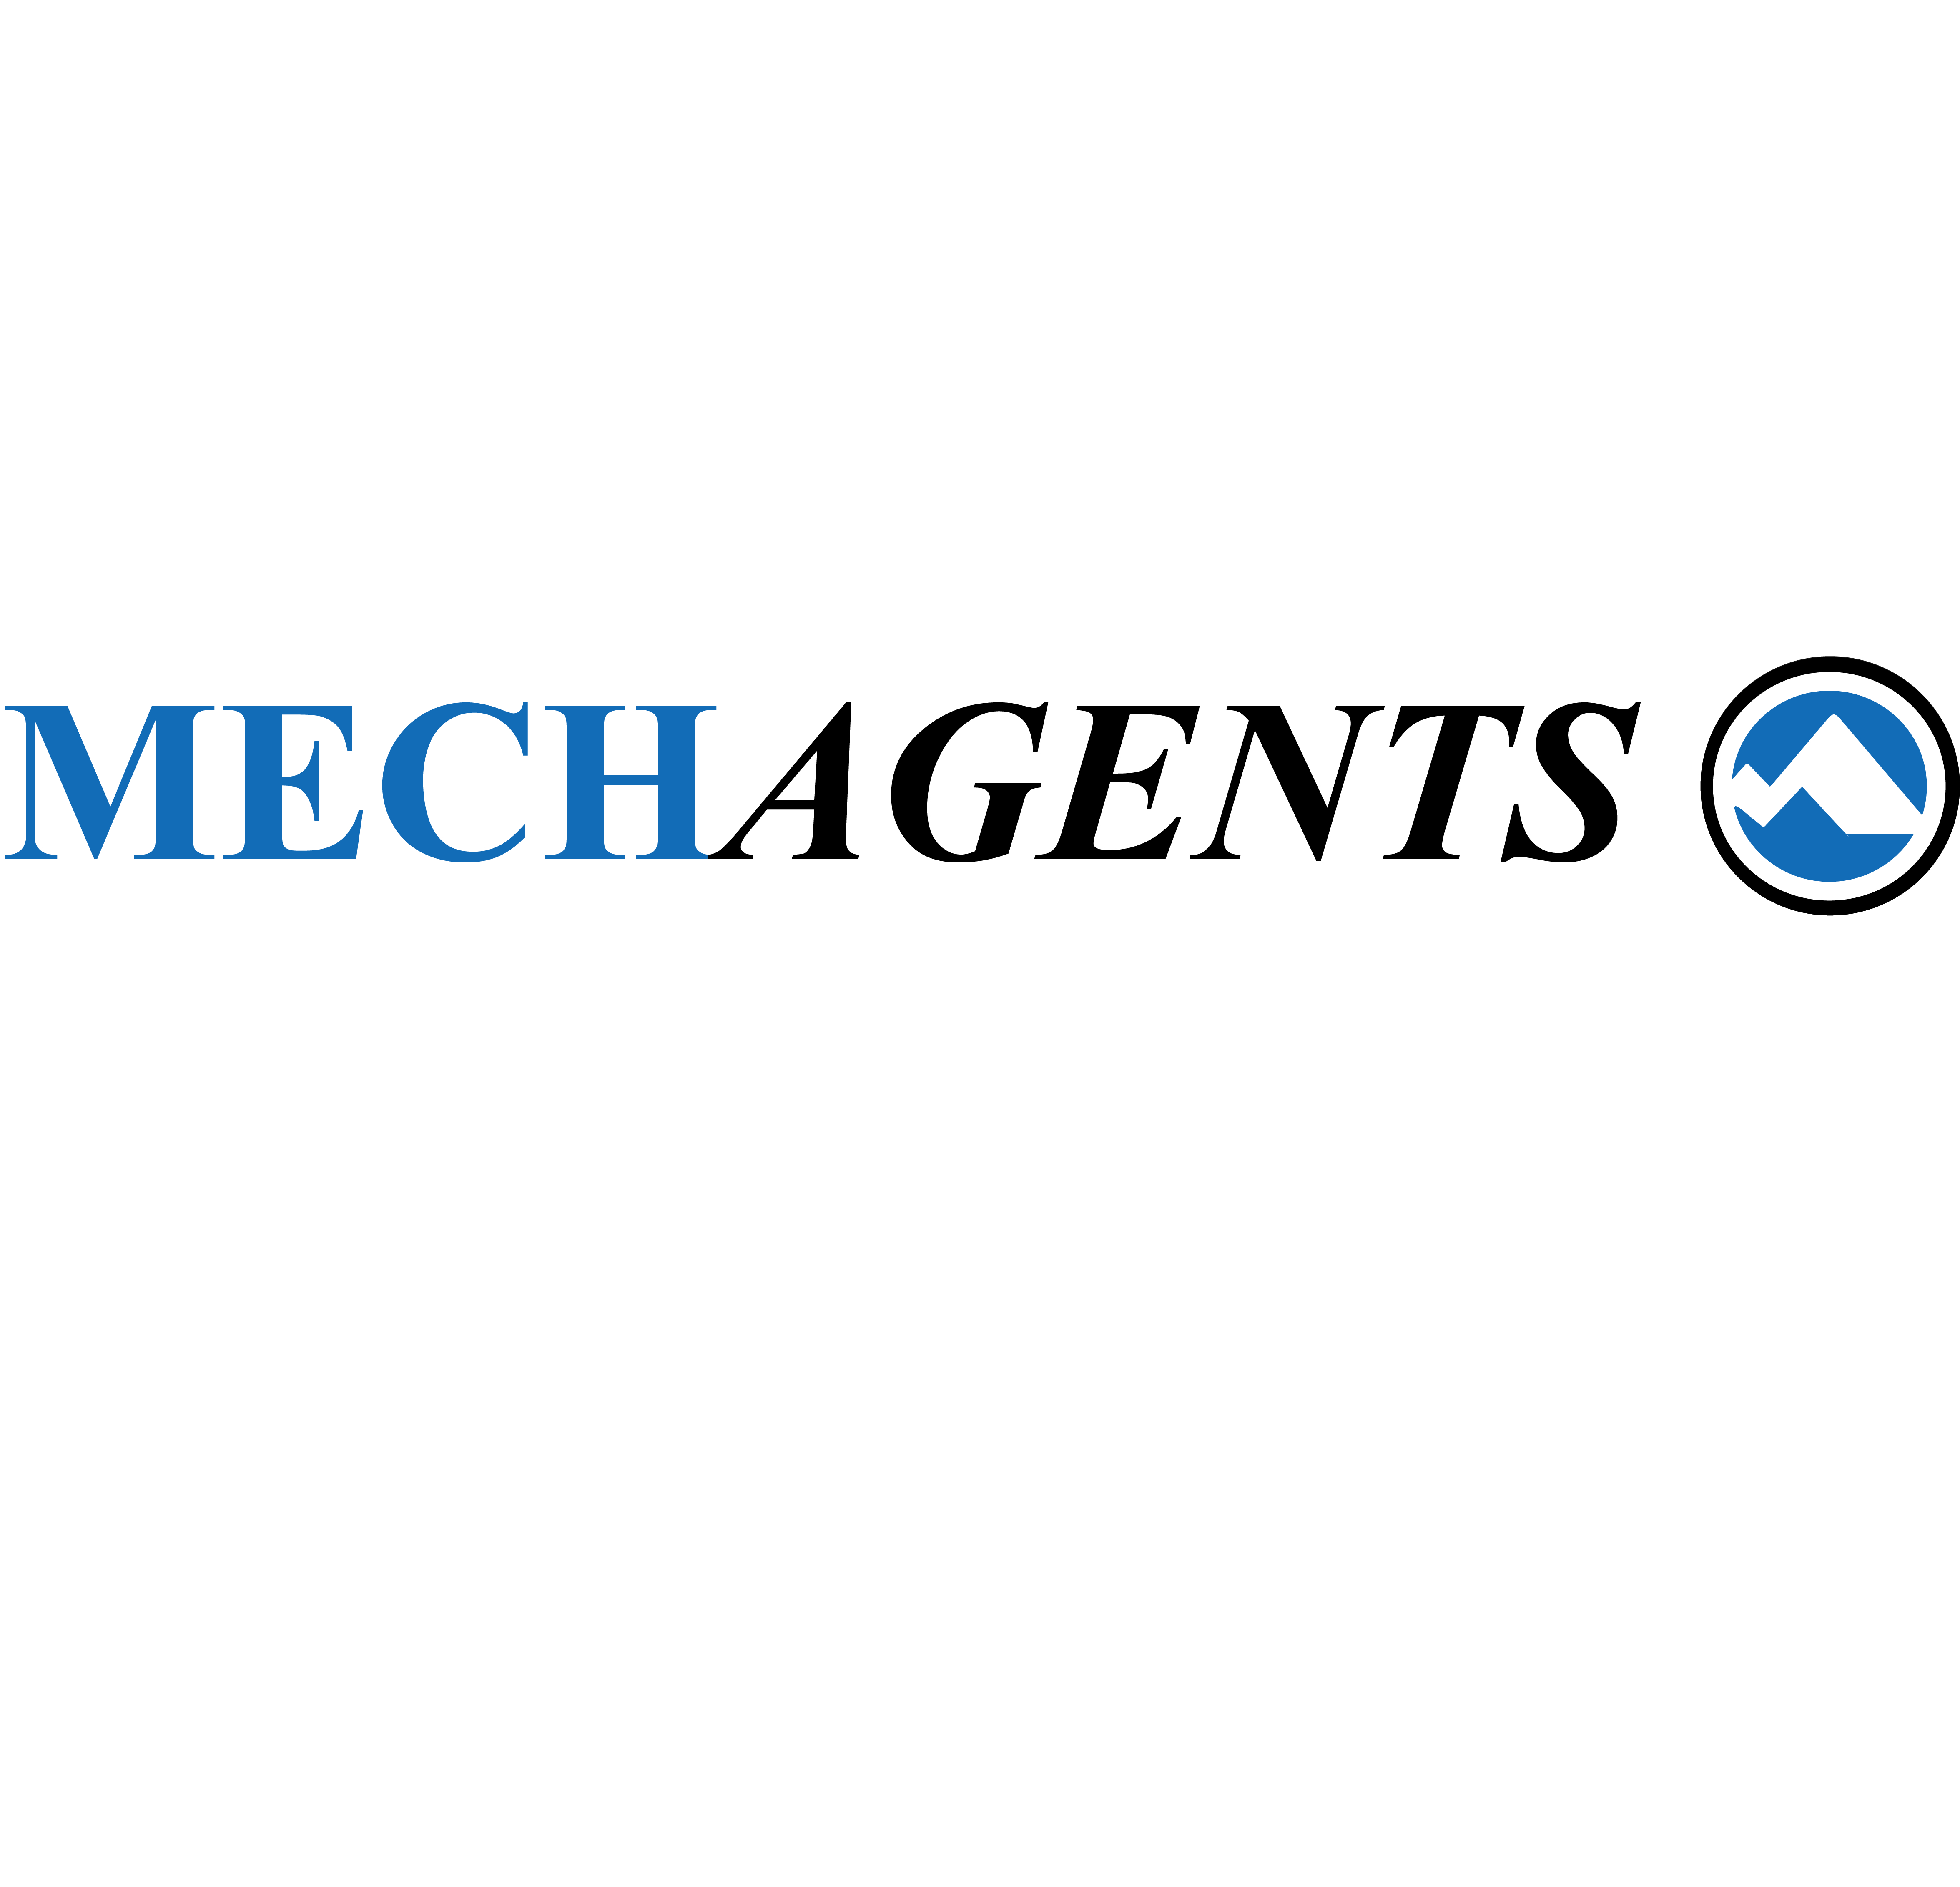 Mechanical Agents